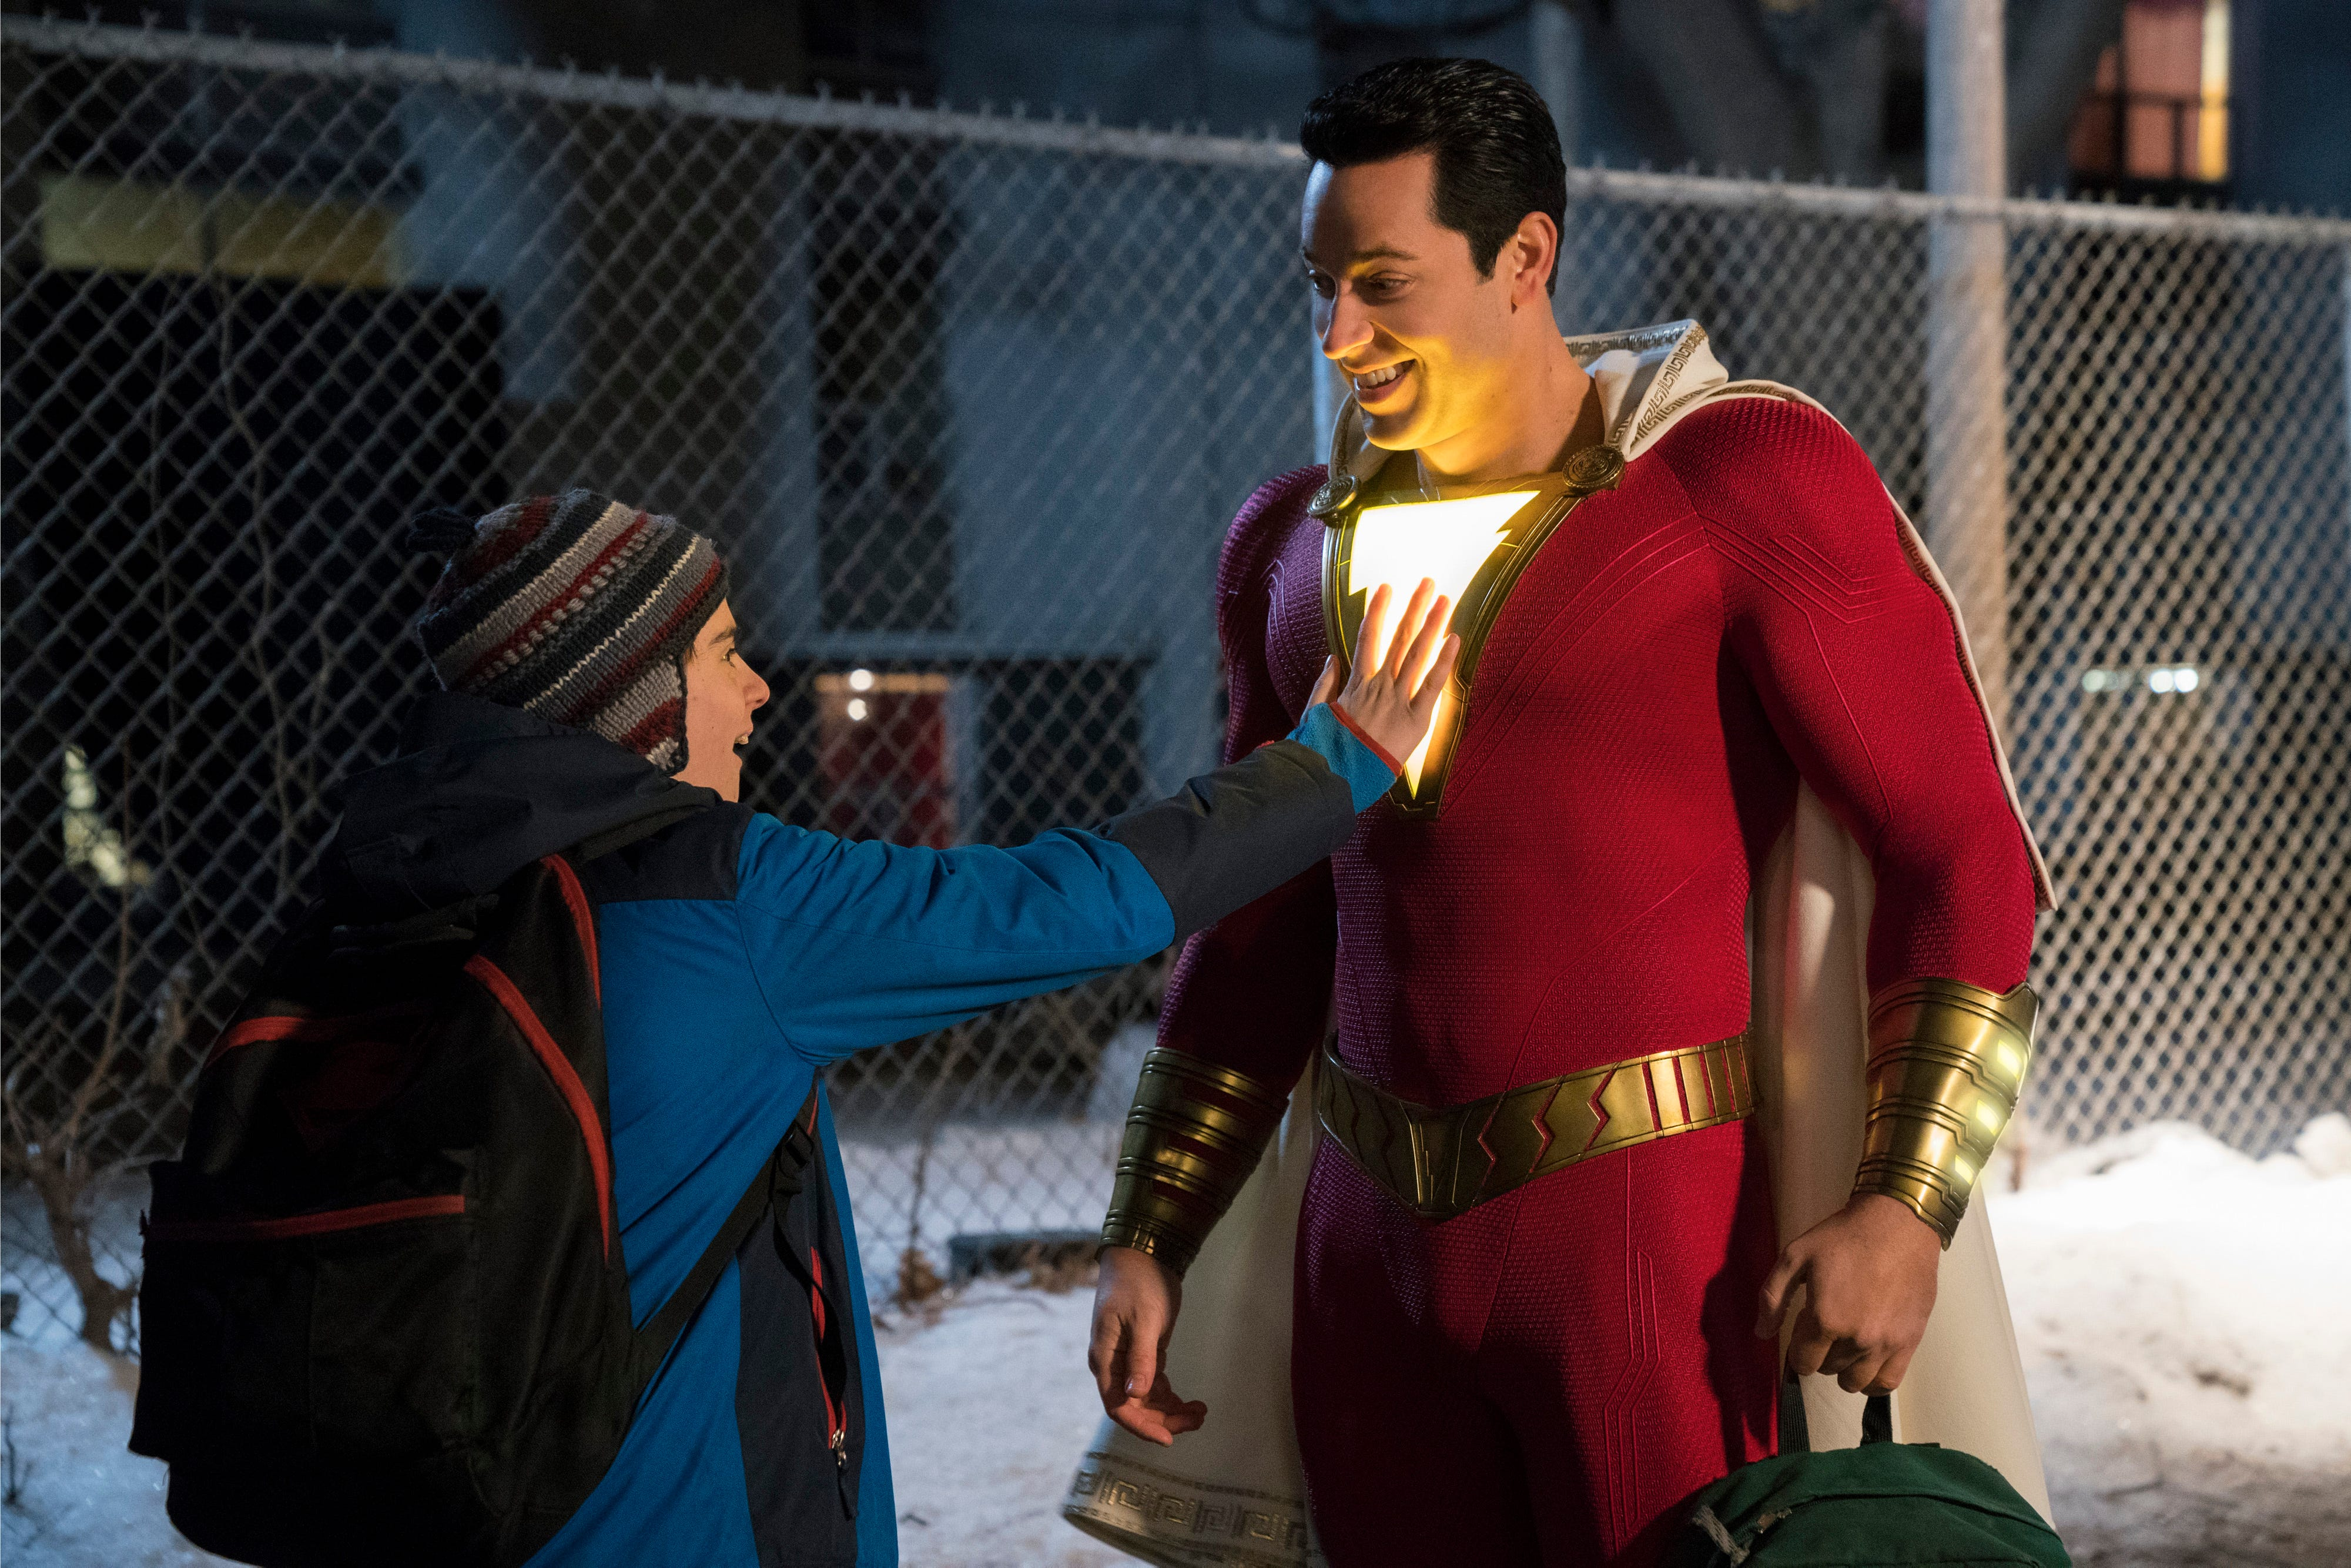 DC's 'Shazam!' thunders to No. 1 with $53.5M and great reviews